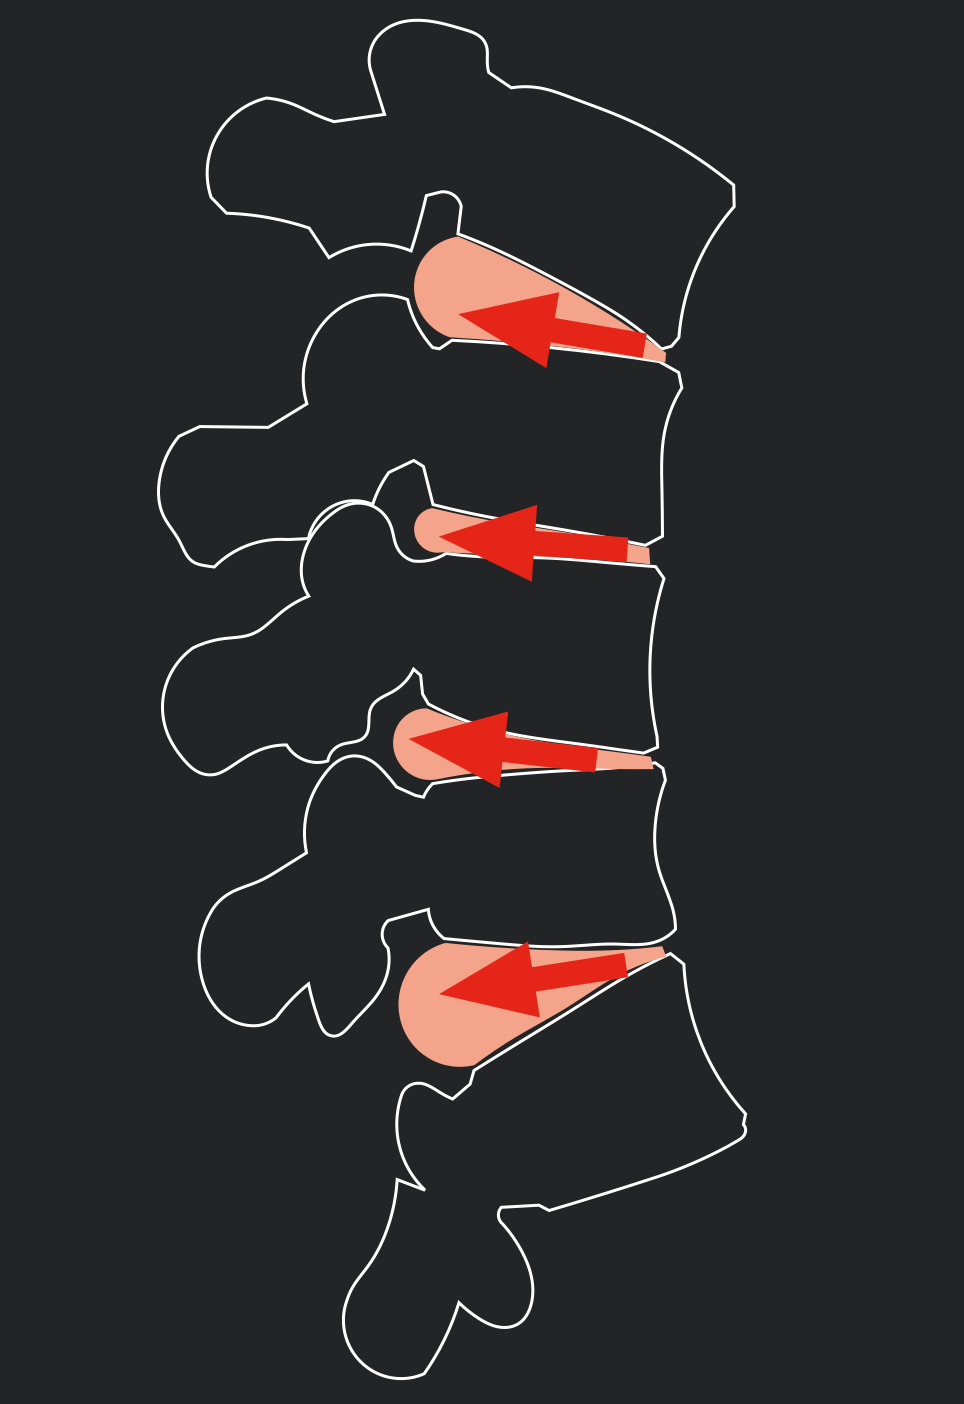 Spinal flexion opens and stretches the rear of the spinal disc.